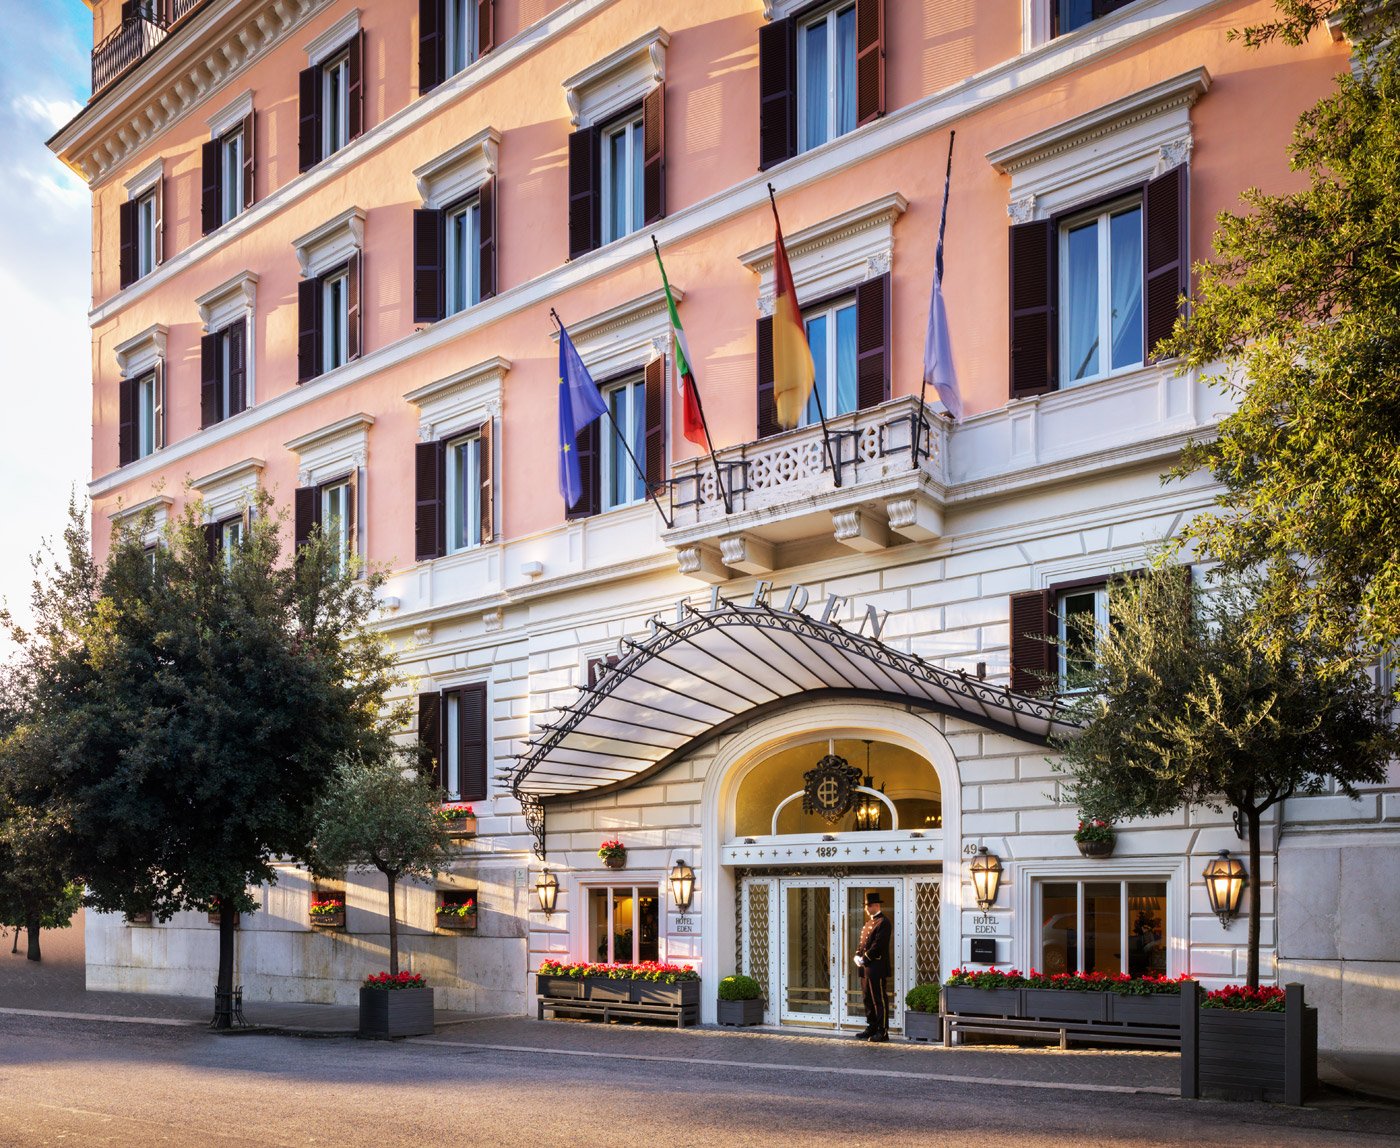 130 years of history and luxury at the Hotel Eden in Rome